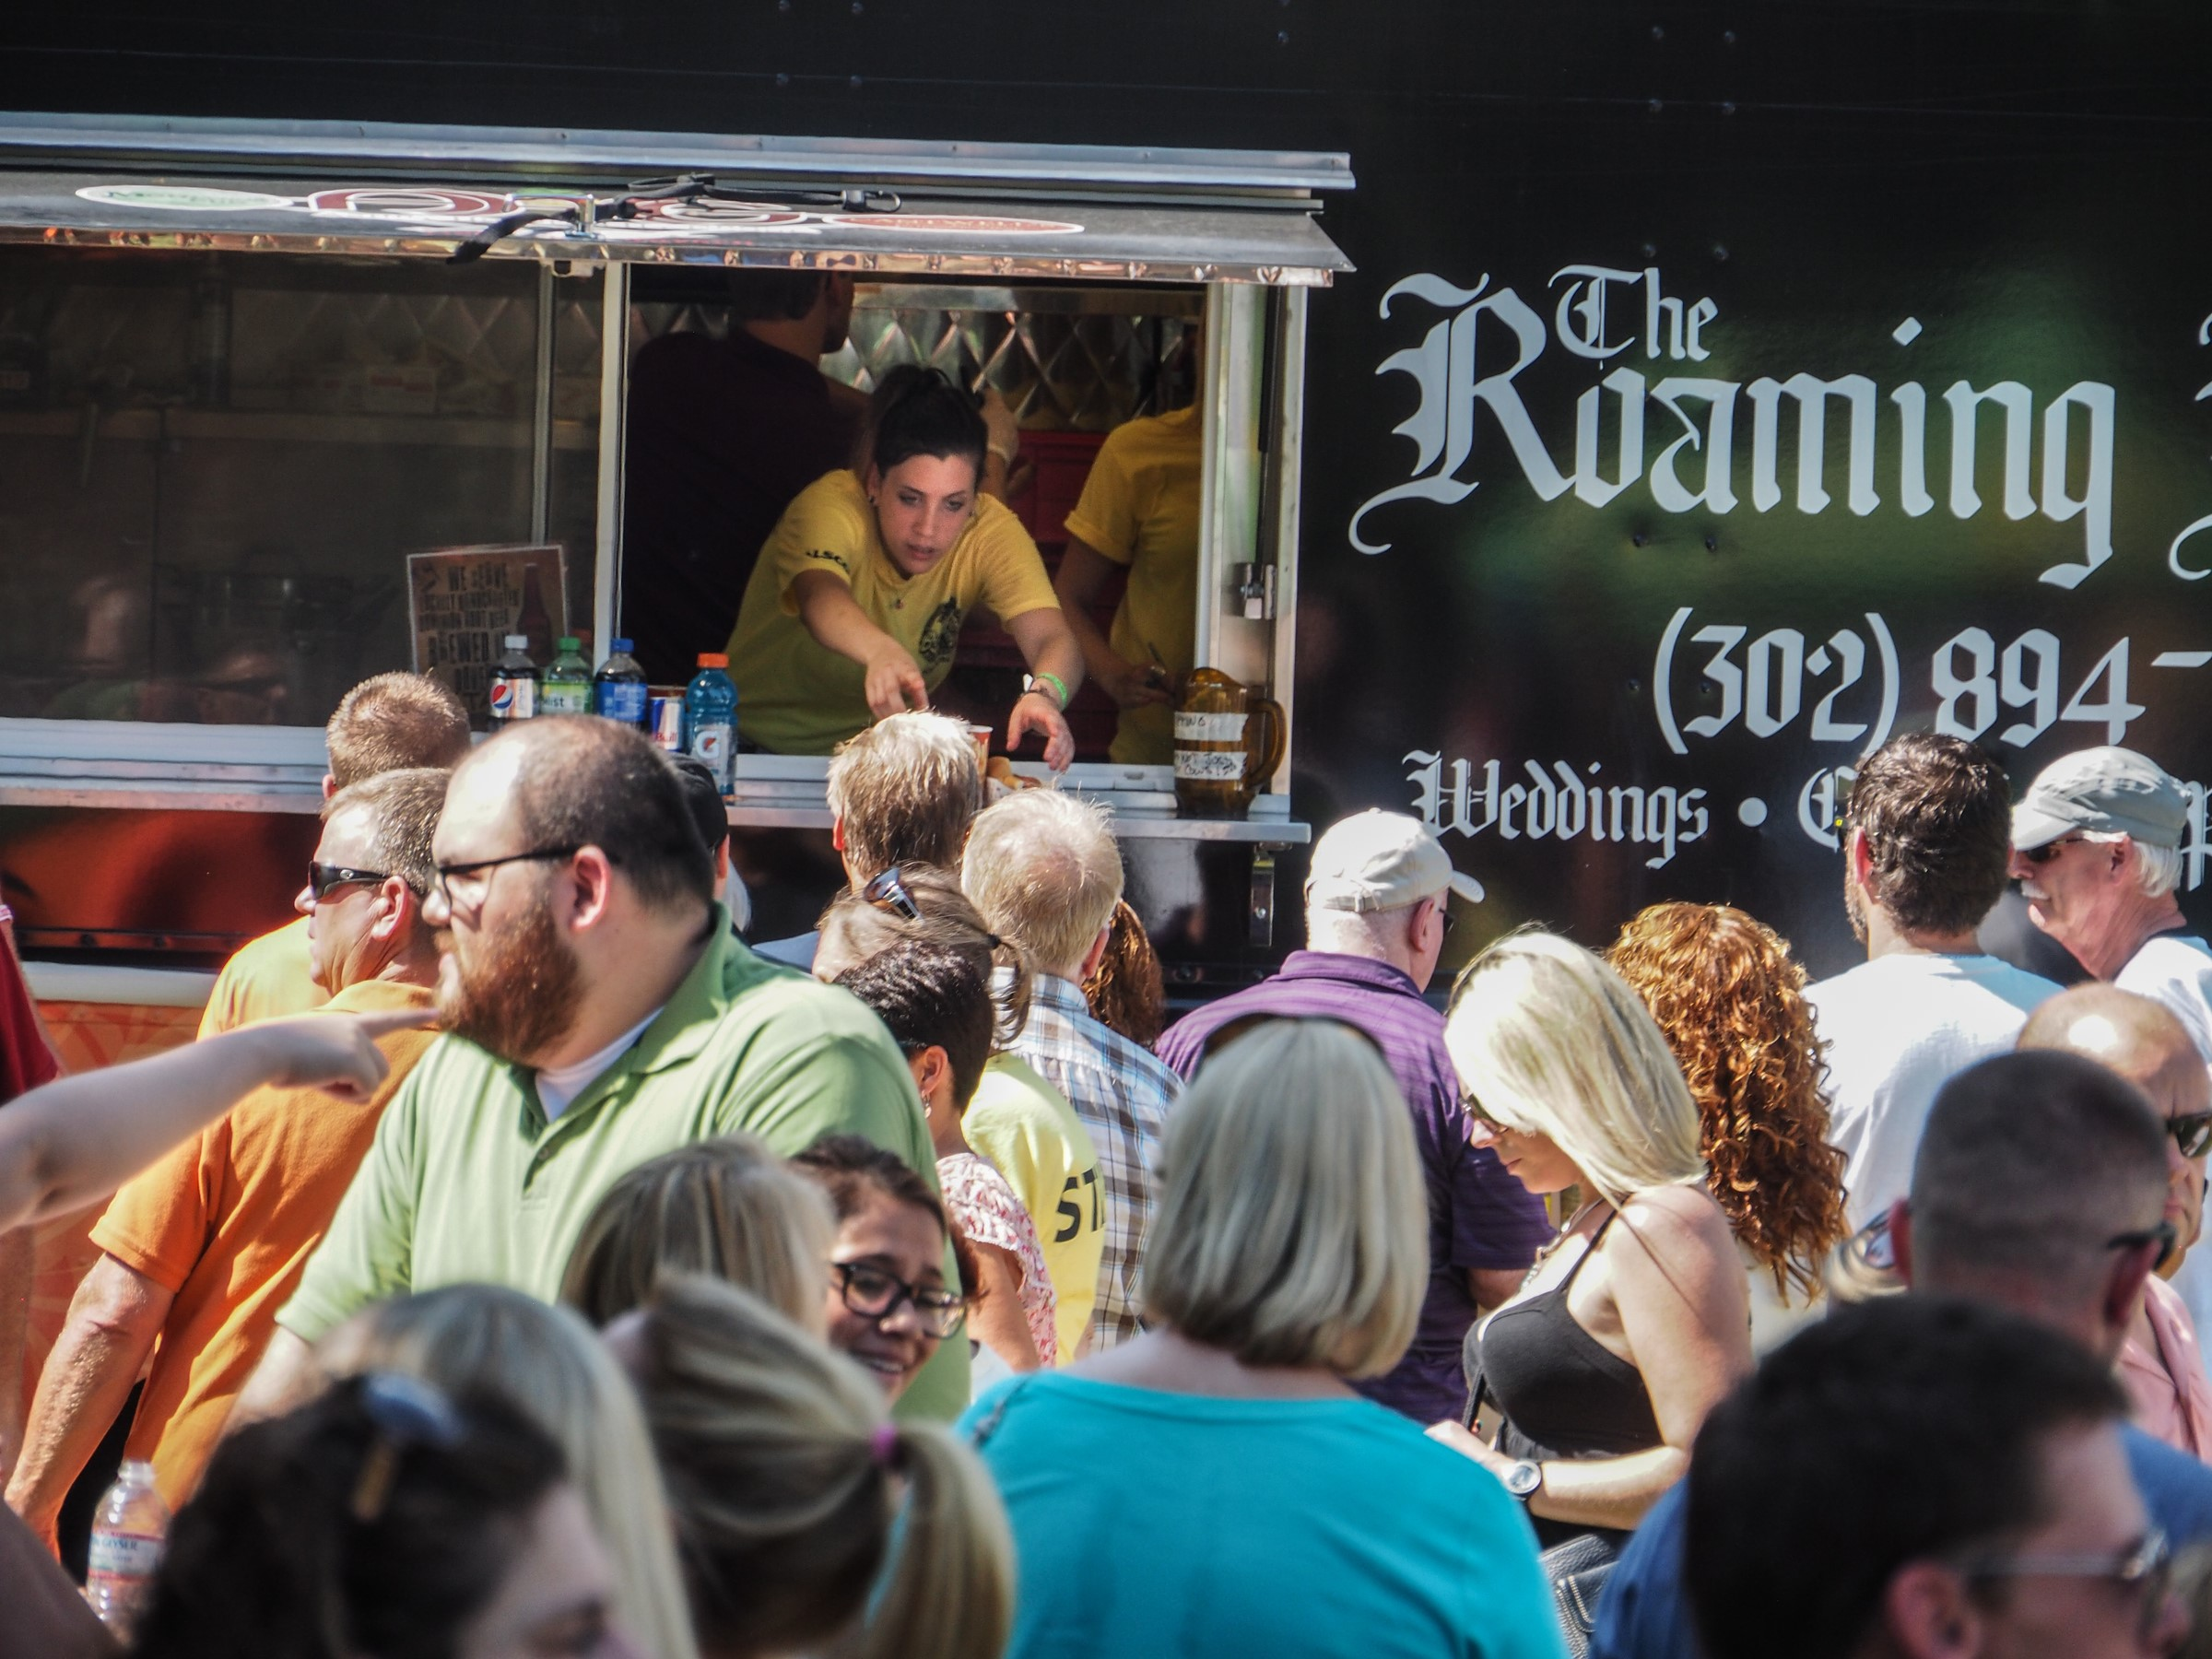 large crowd gathered just outside the window of the roaming raven food truck